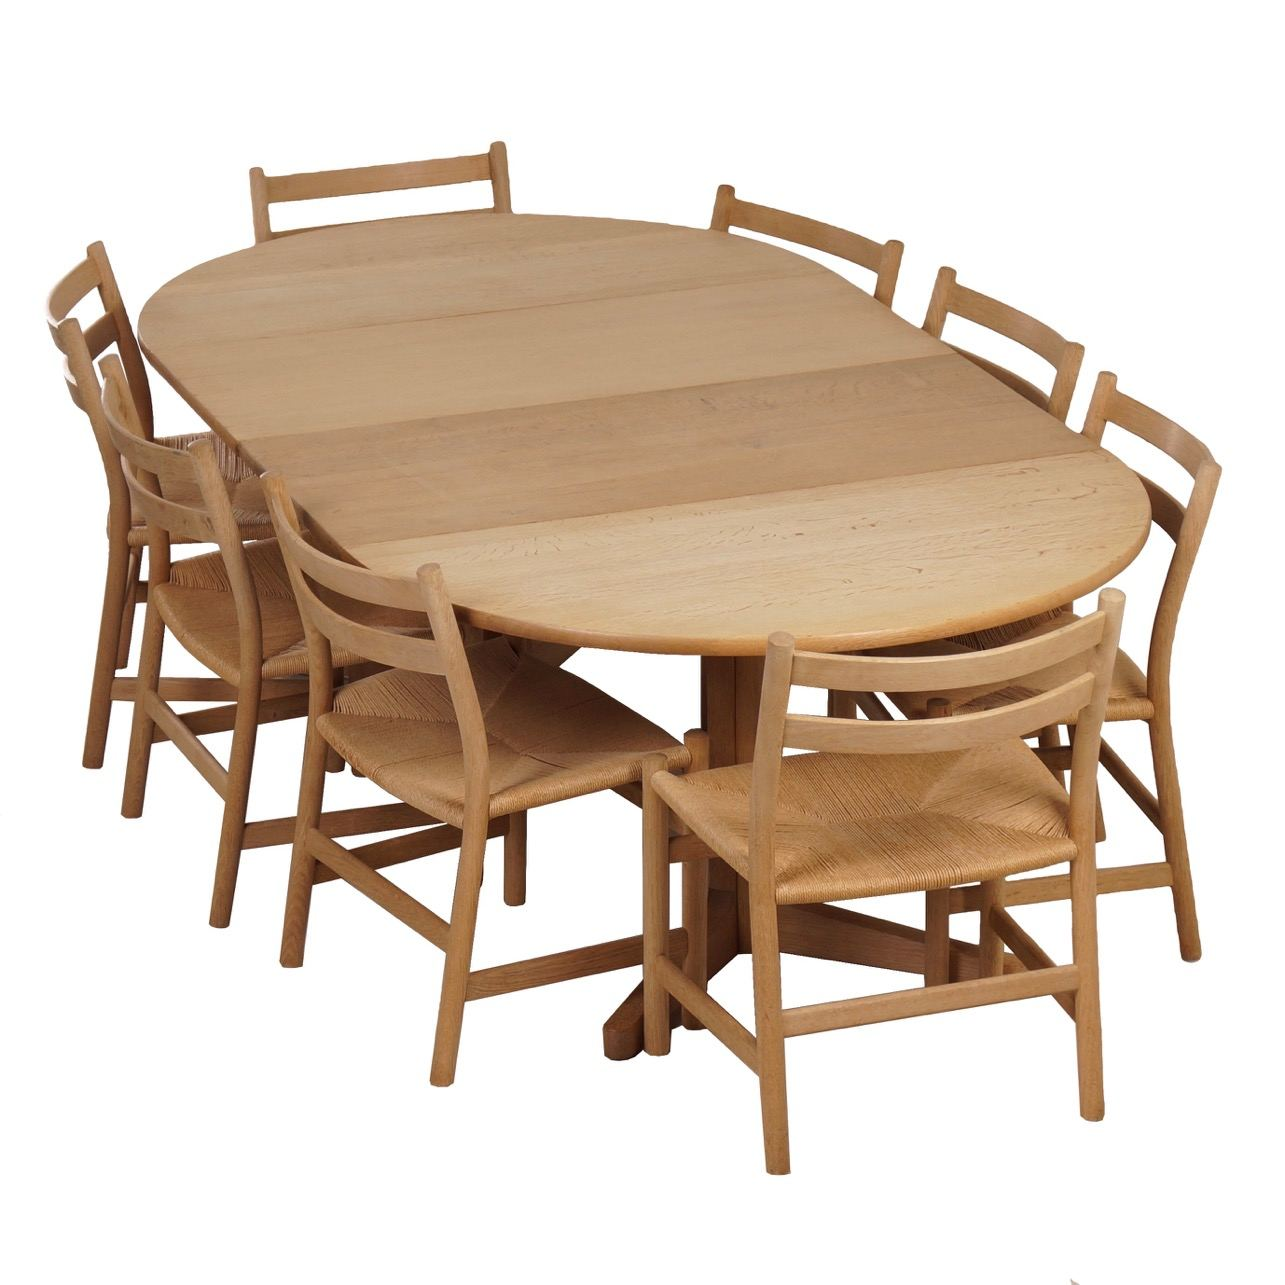 Blank Oak Dining Set with Hans Wegner Chairs and Møller Table, 1965.